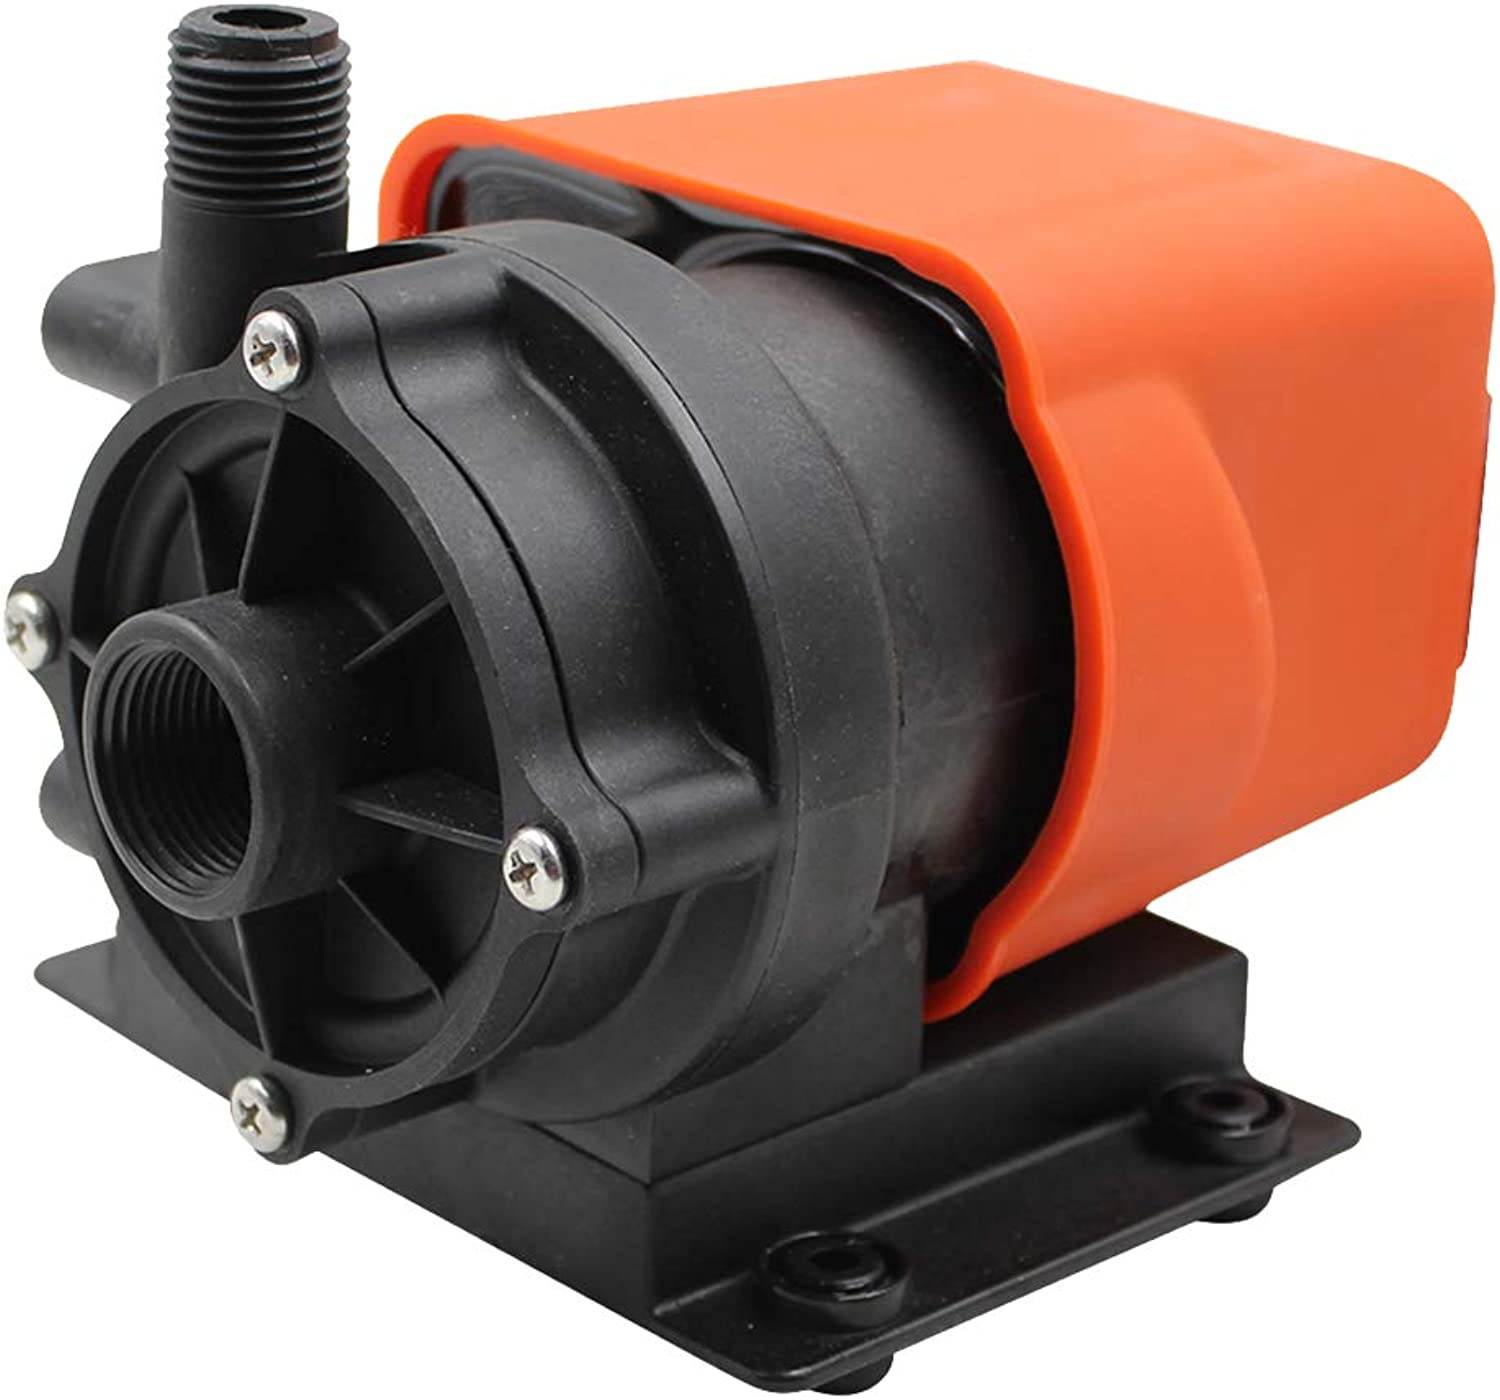 Baosity SEAFLO Marine Air Conditioner Magnetic Drive Raw Water Circulation Pump 500 GPH 220V Submersible